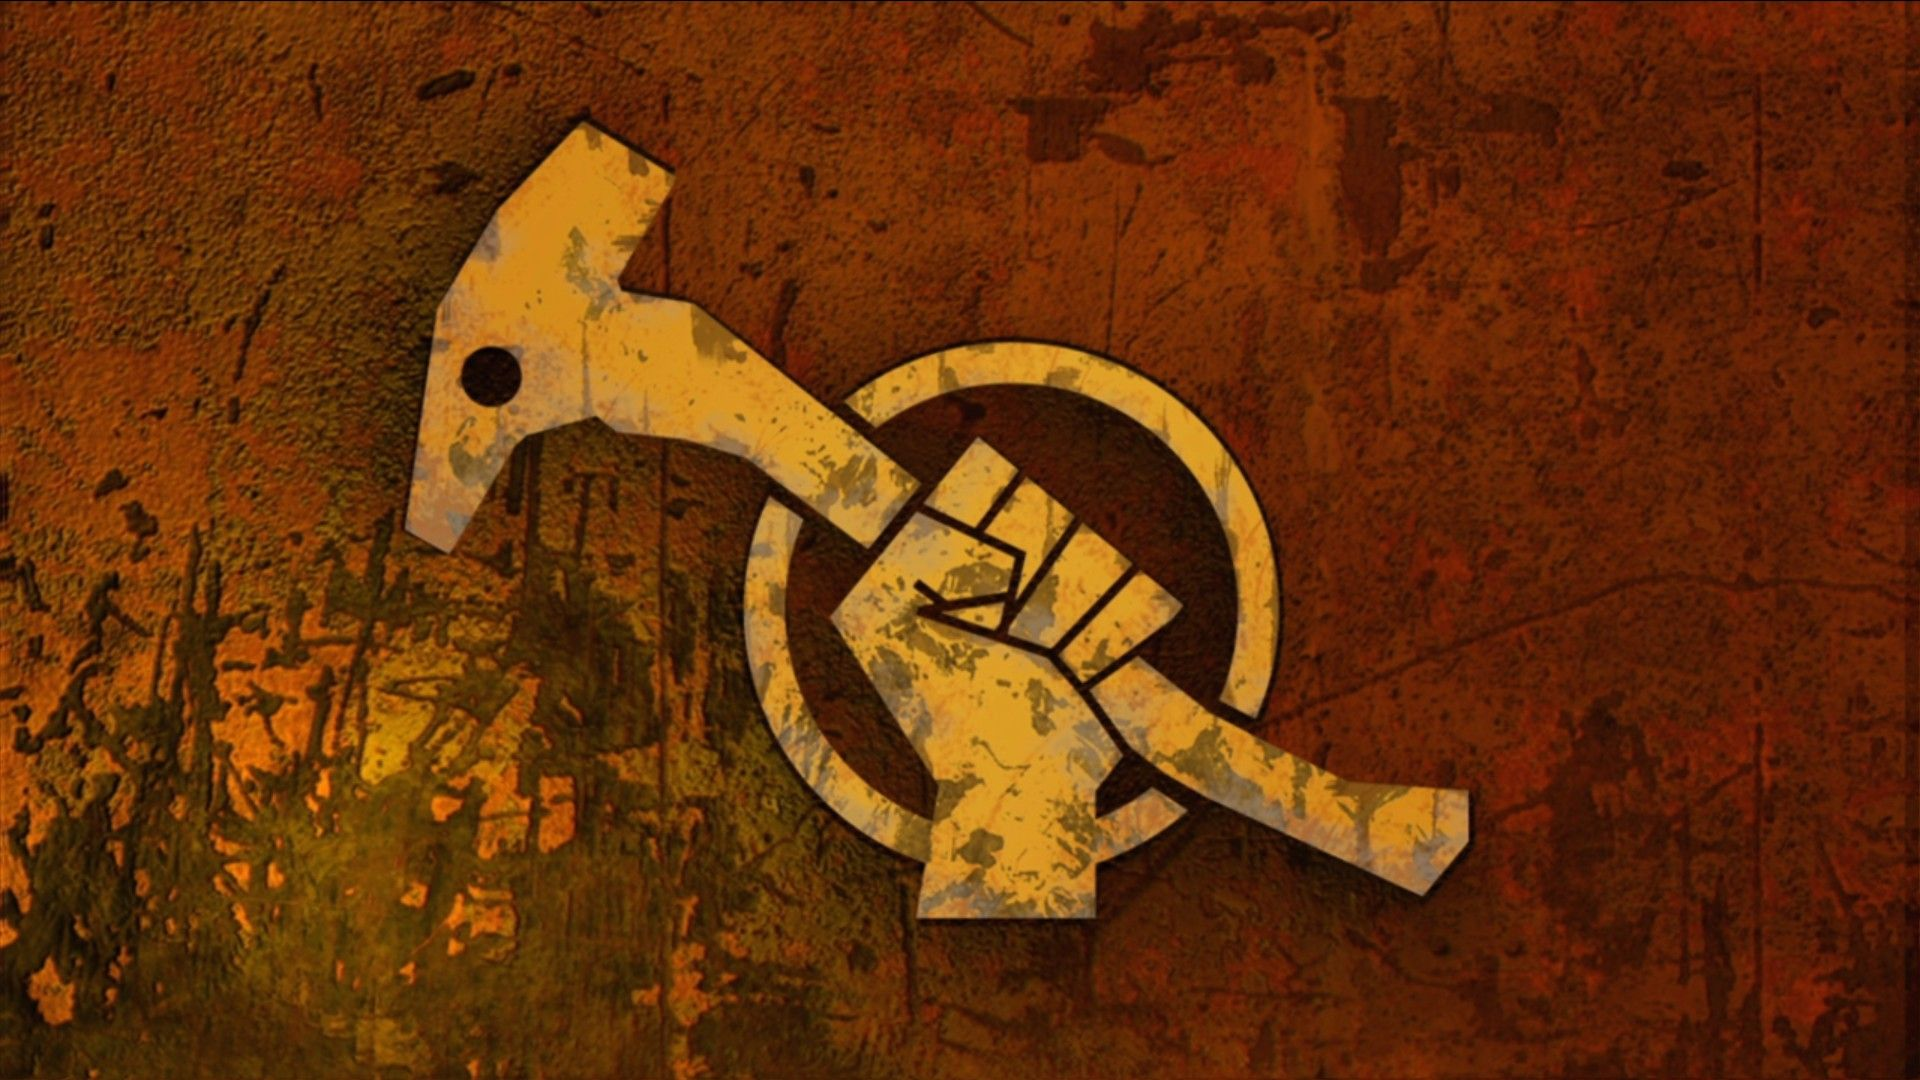 Red Faction: Guerilla's  logo is heavily inspired by constructivist art from Russian propaganda from the early 1900s.